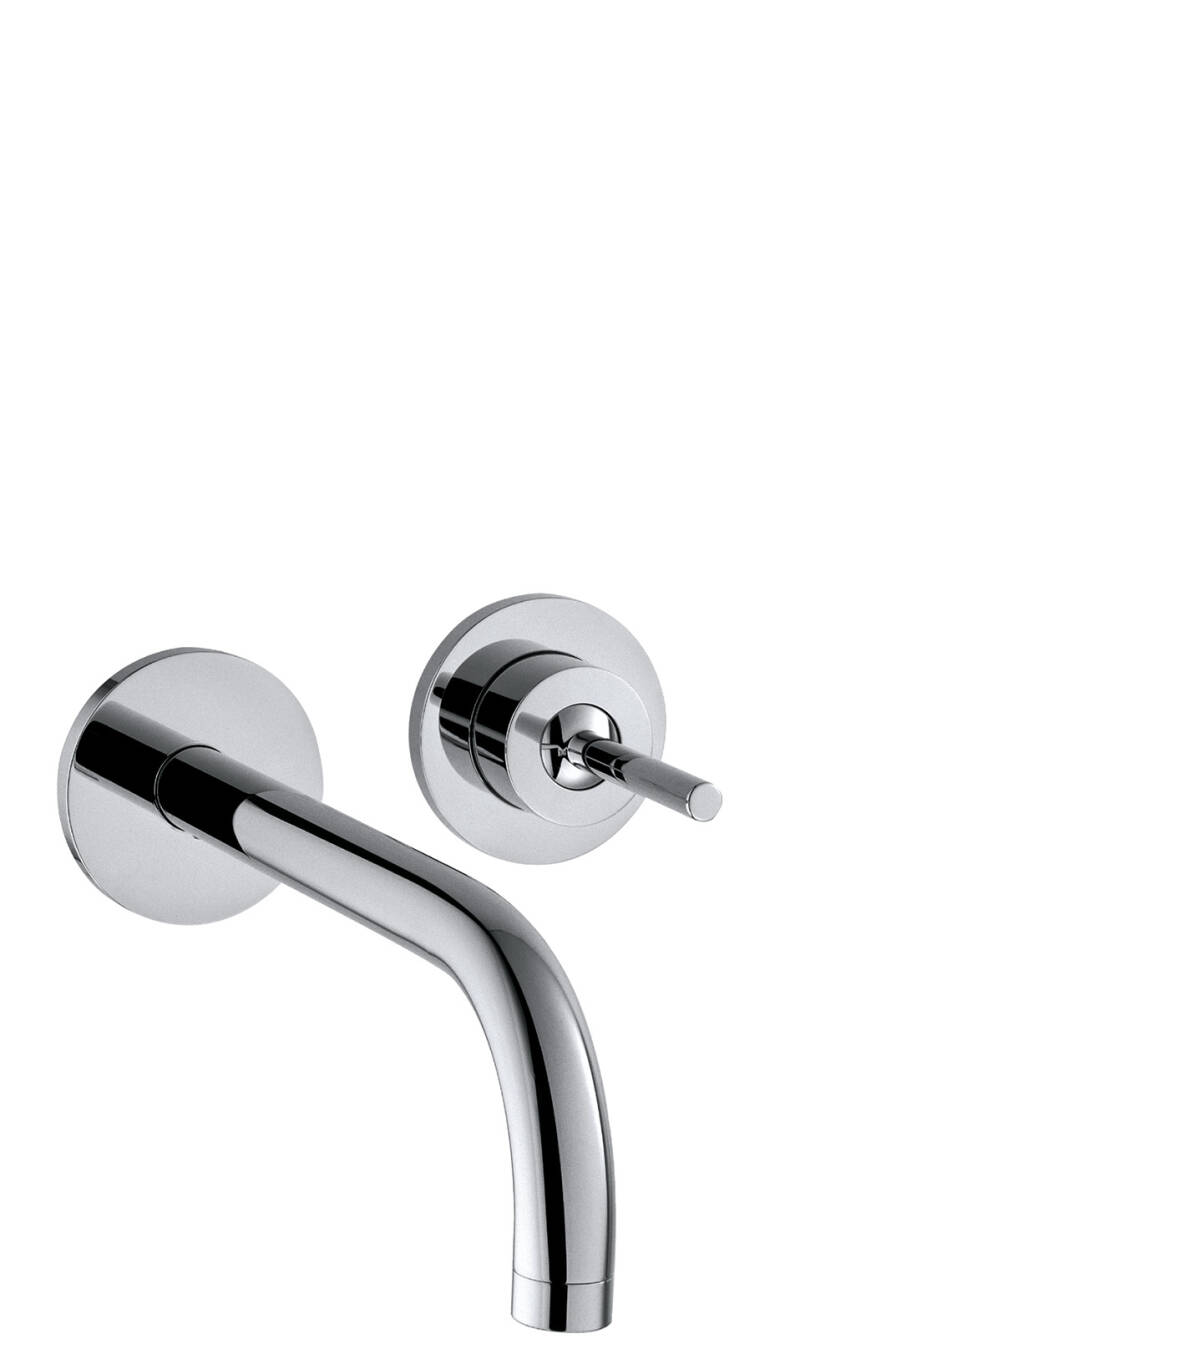 Single lever basin mixer for concealed installation wall-mounted with spout 165 mm and escutcheons, Brushed Nickel, 38113820